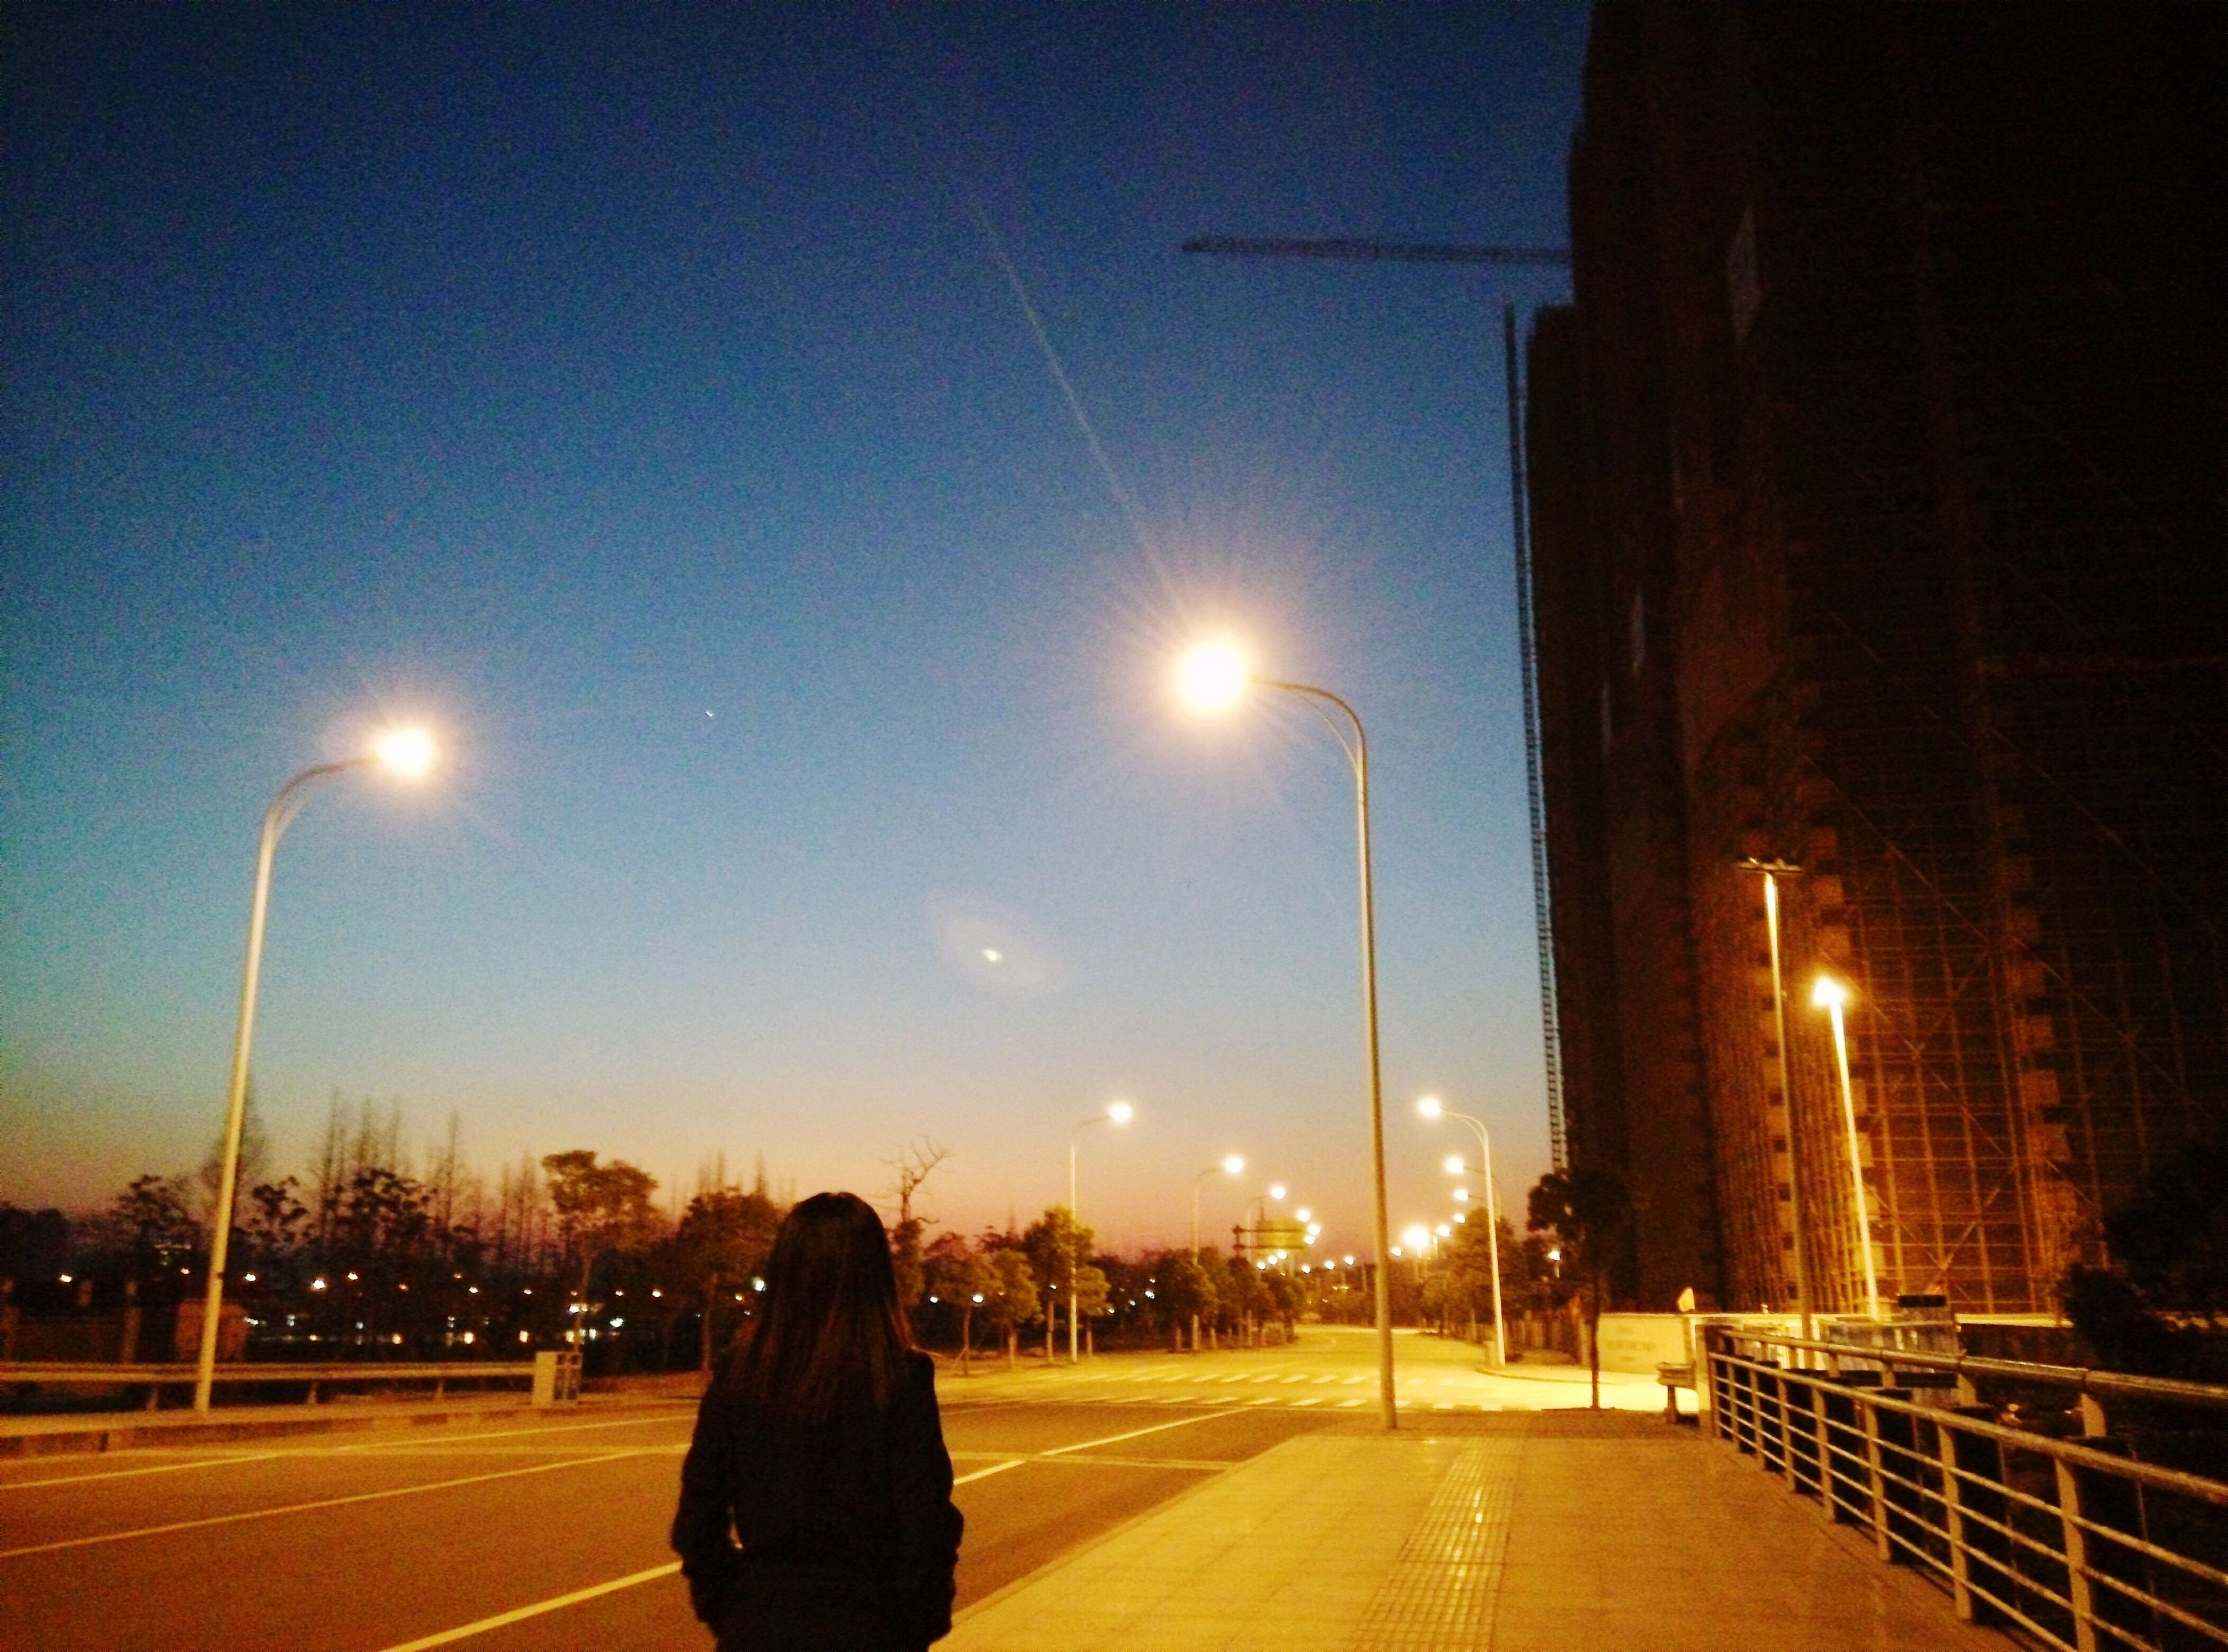 illuminated, street light, night, the way forward, road, street, lighting equipment, transportation, sky, diminishing perspective, city, clear sky, vanishing point, road marking, building exterior, car, blue, lens flare, dusk, one person